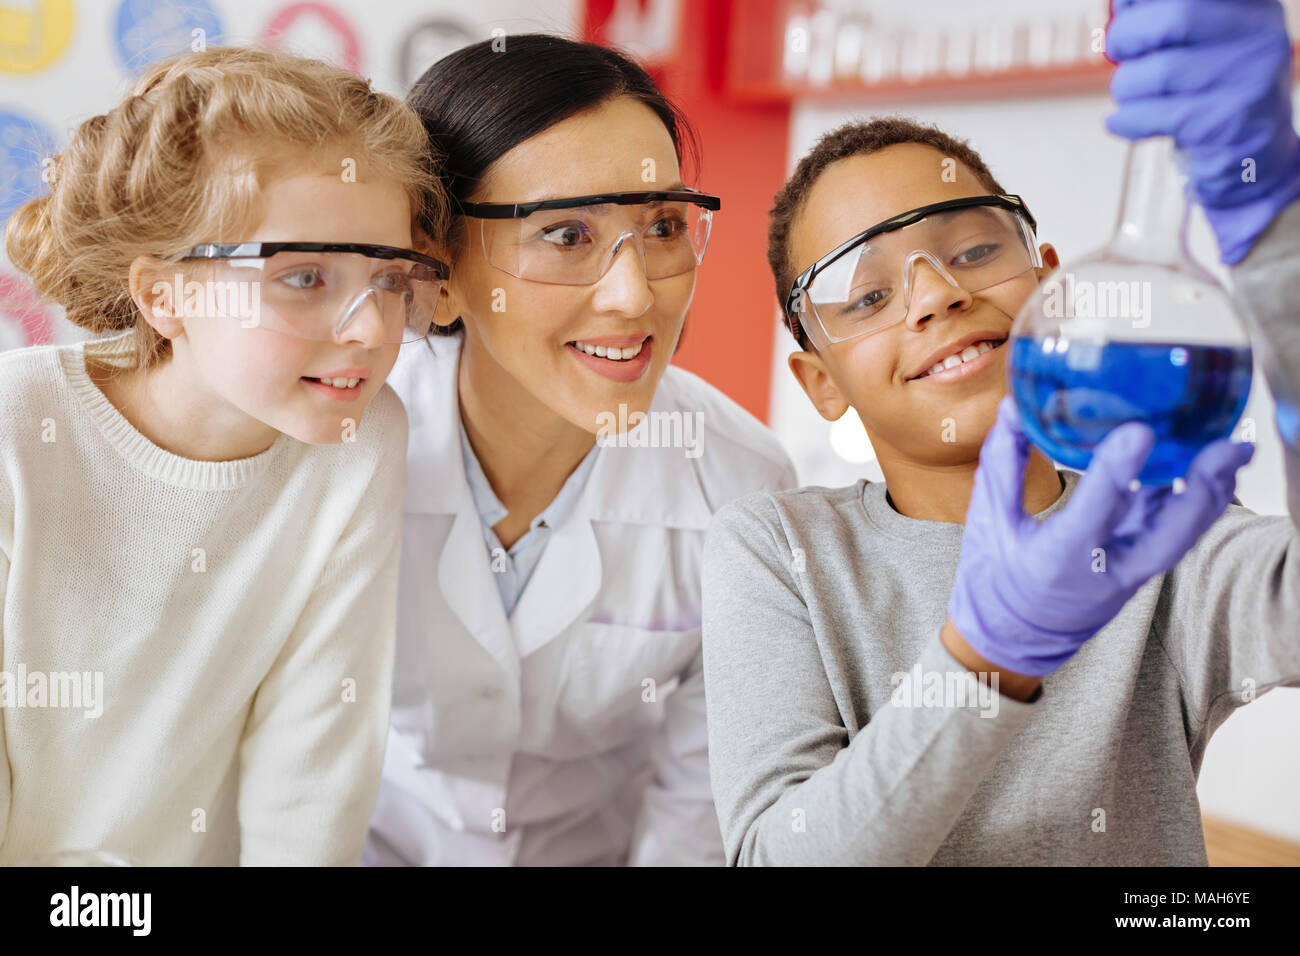 Schoolboy showing flask with substance proudly to teacher and classmate Stock Photo